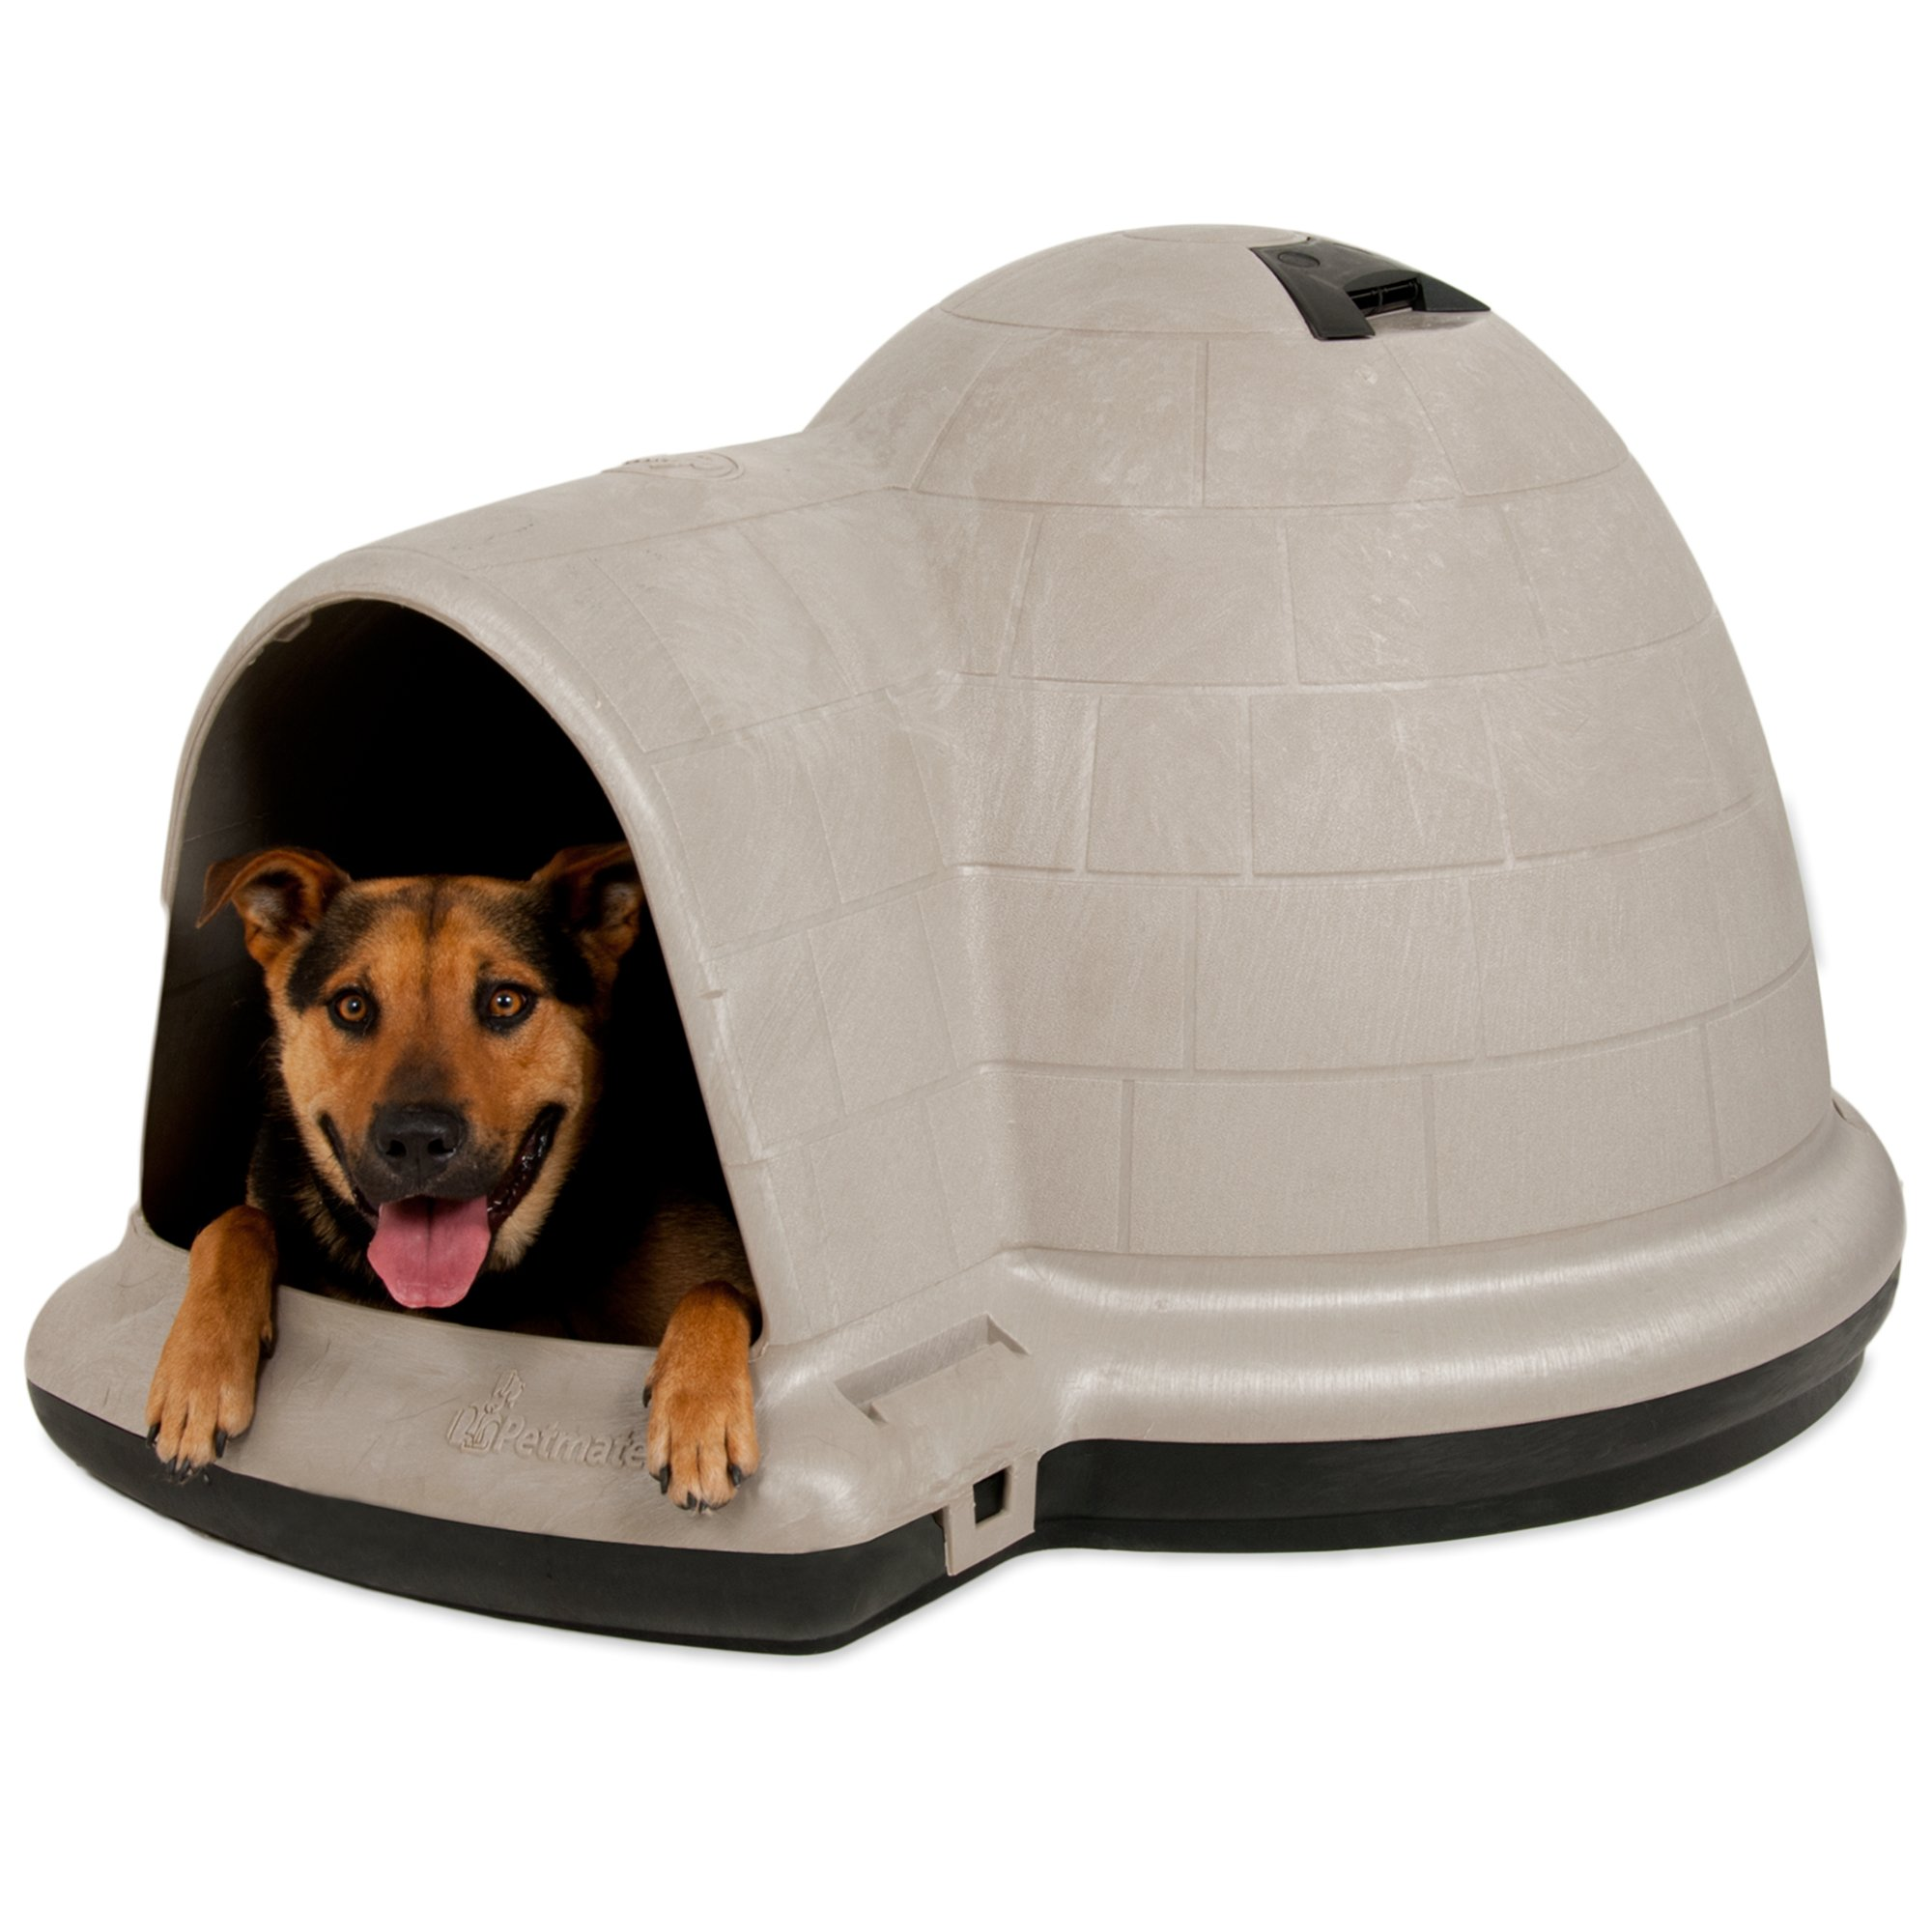 Igloo dog house petmate indigo dog home dog igloo petco for Petmate dog house large